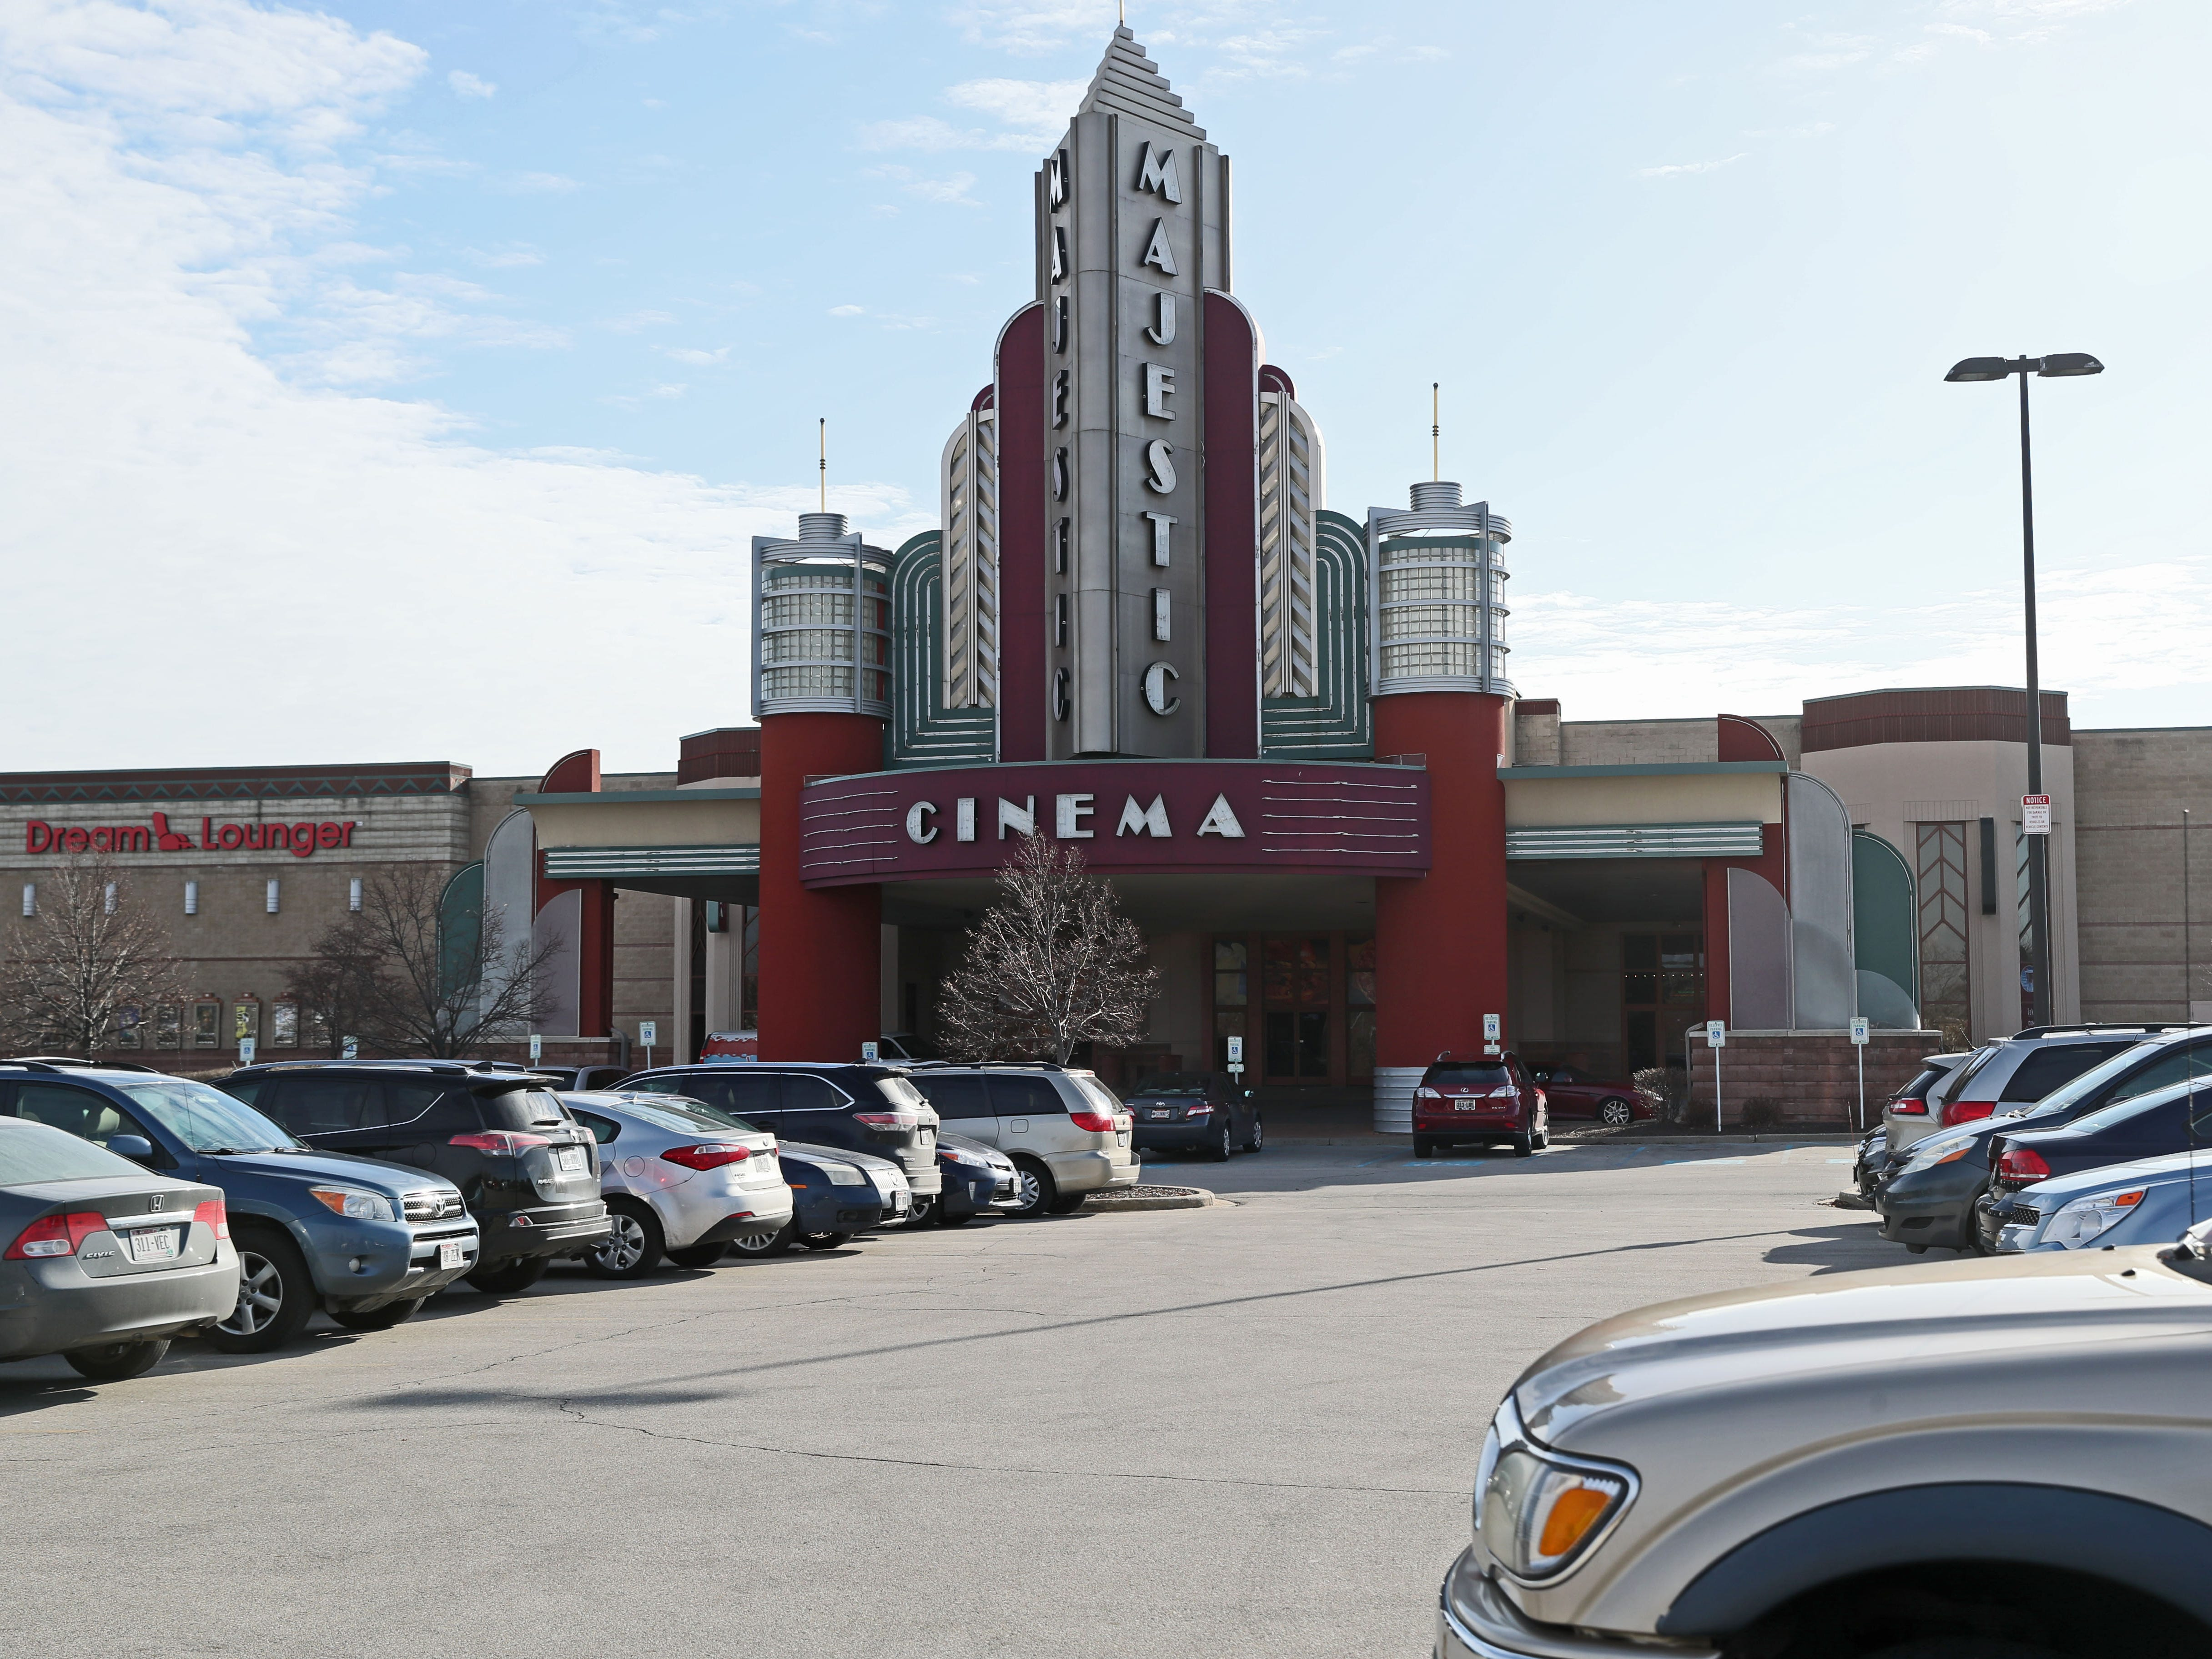 The parking lot at the Marcus Majestic Cinema, 770 Springdale Road in Brookfield.